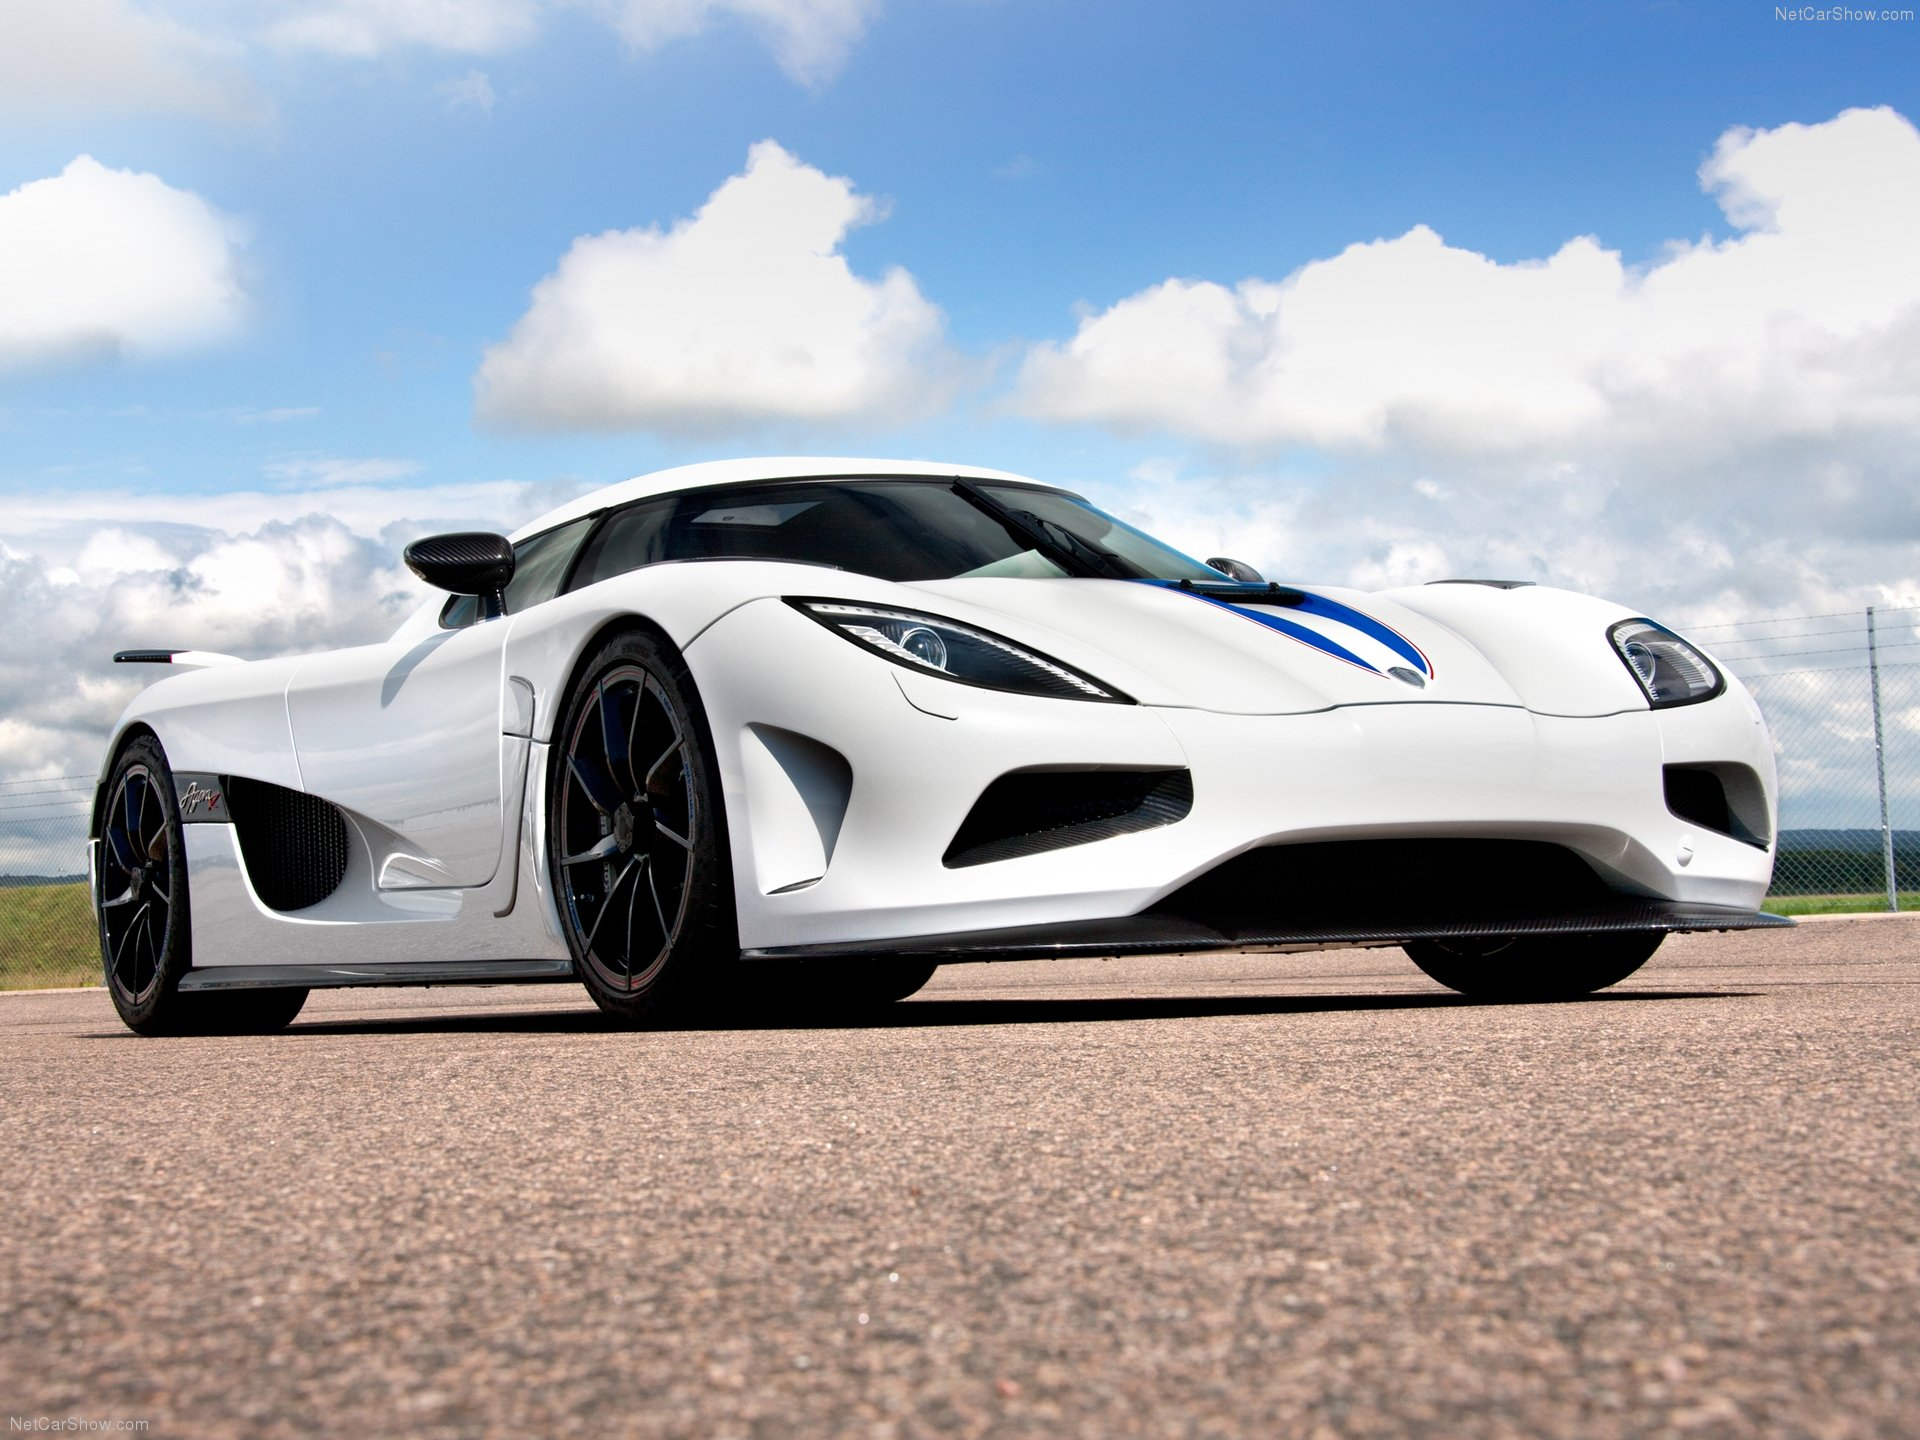 Koenigsegg Agera R Specs HD Wallpaper Cars Wallpapers 1920x1440